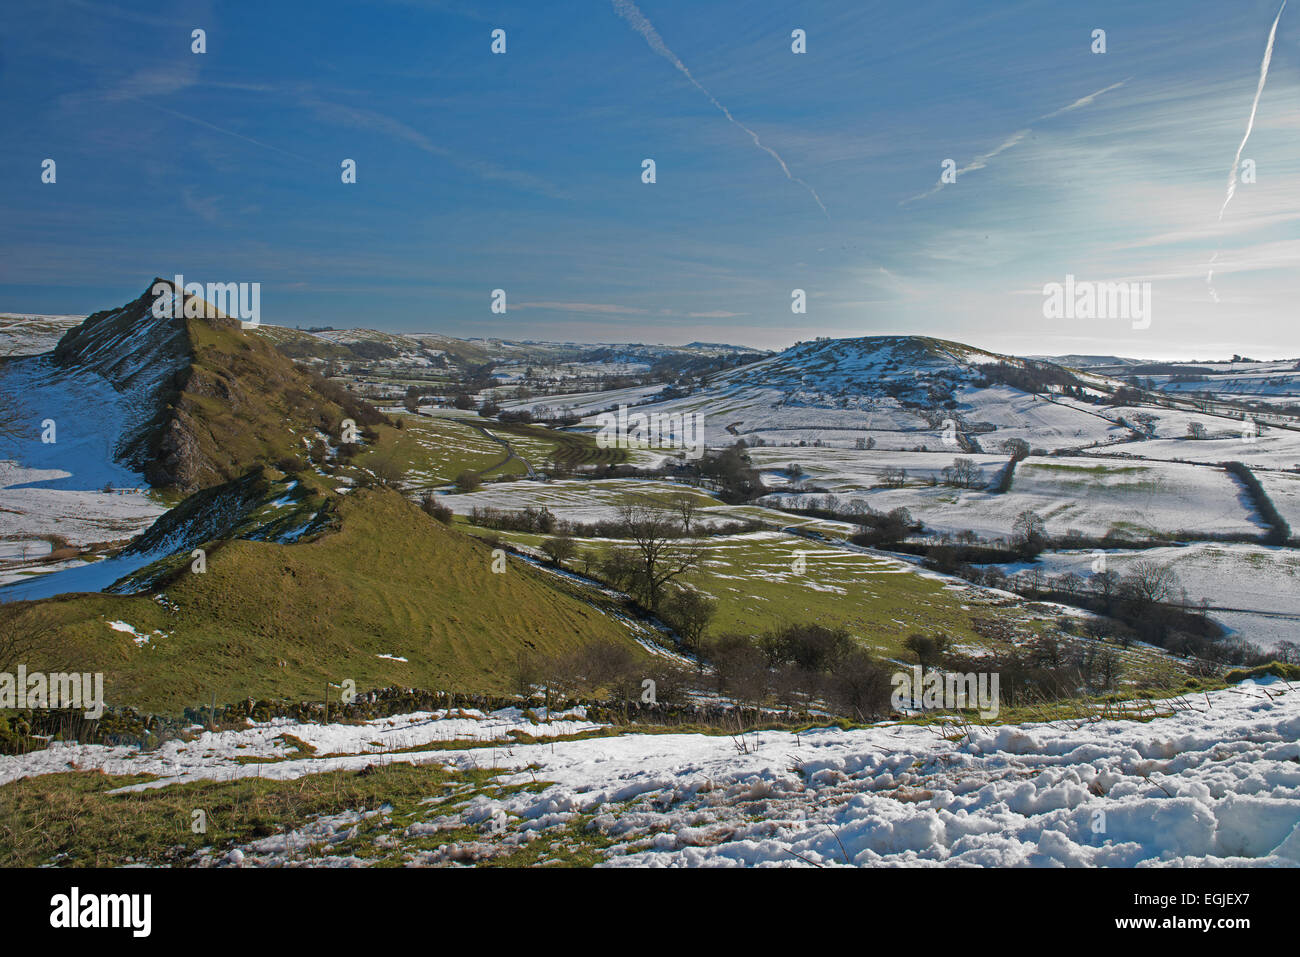 Chrome Hill and Parkhouse Hill during winter, Upper Dove Valley, Peak District National Park, Derbyshire, England,UK,GB - Stock Image